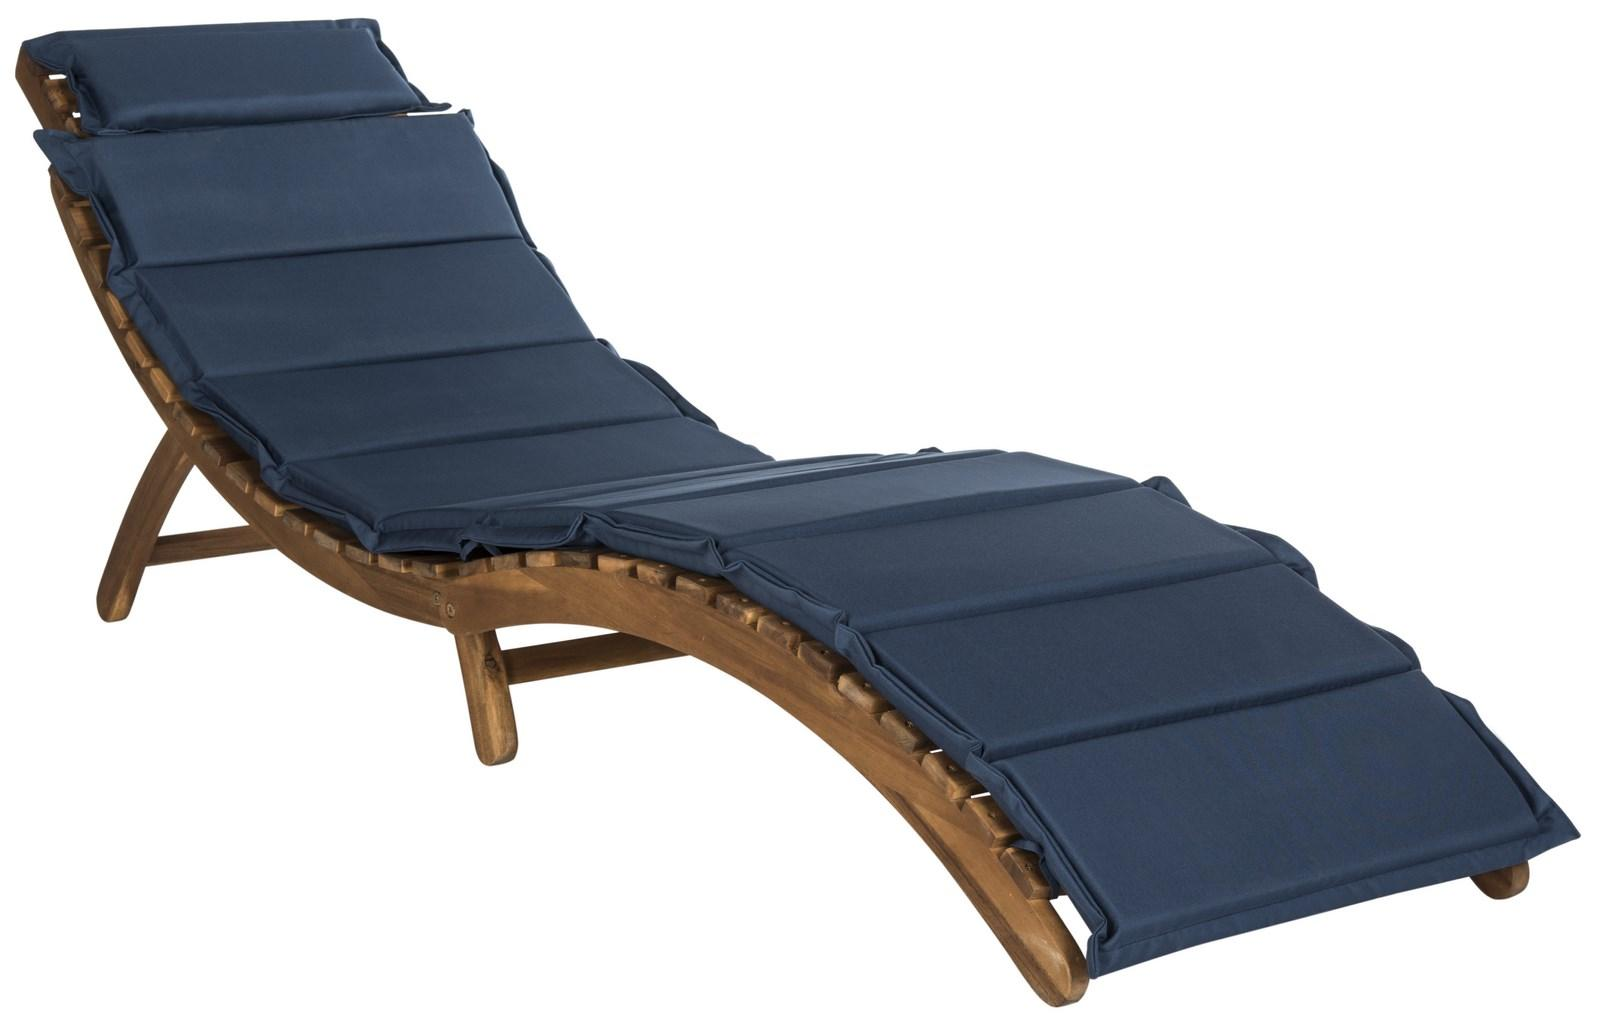 PAT7020C Outdoor Chaise Loungers - Furniture by Safavieh on Safavieh Chaise Lounge id=11545